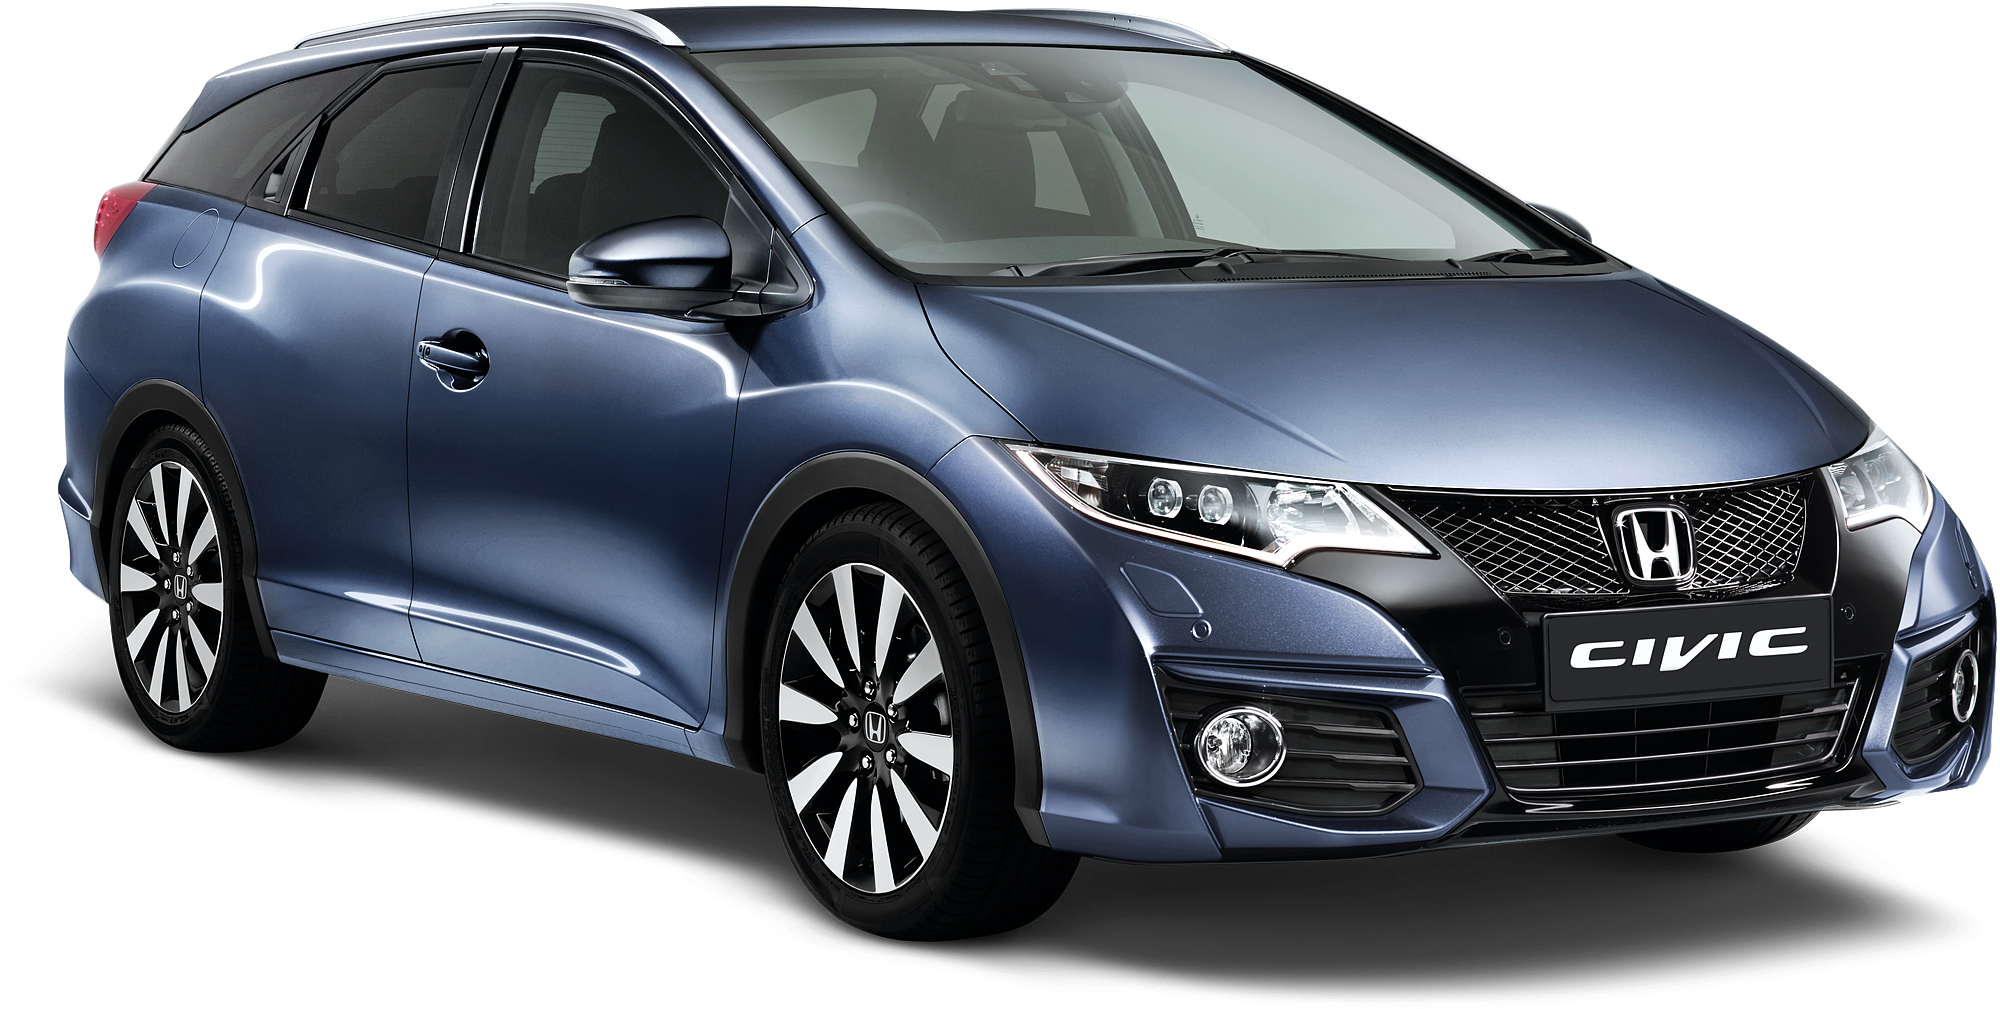 Honda Approved Used Car Service Plans